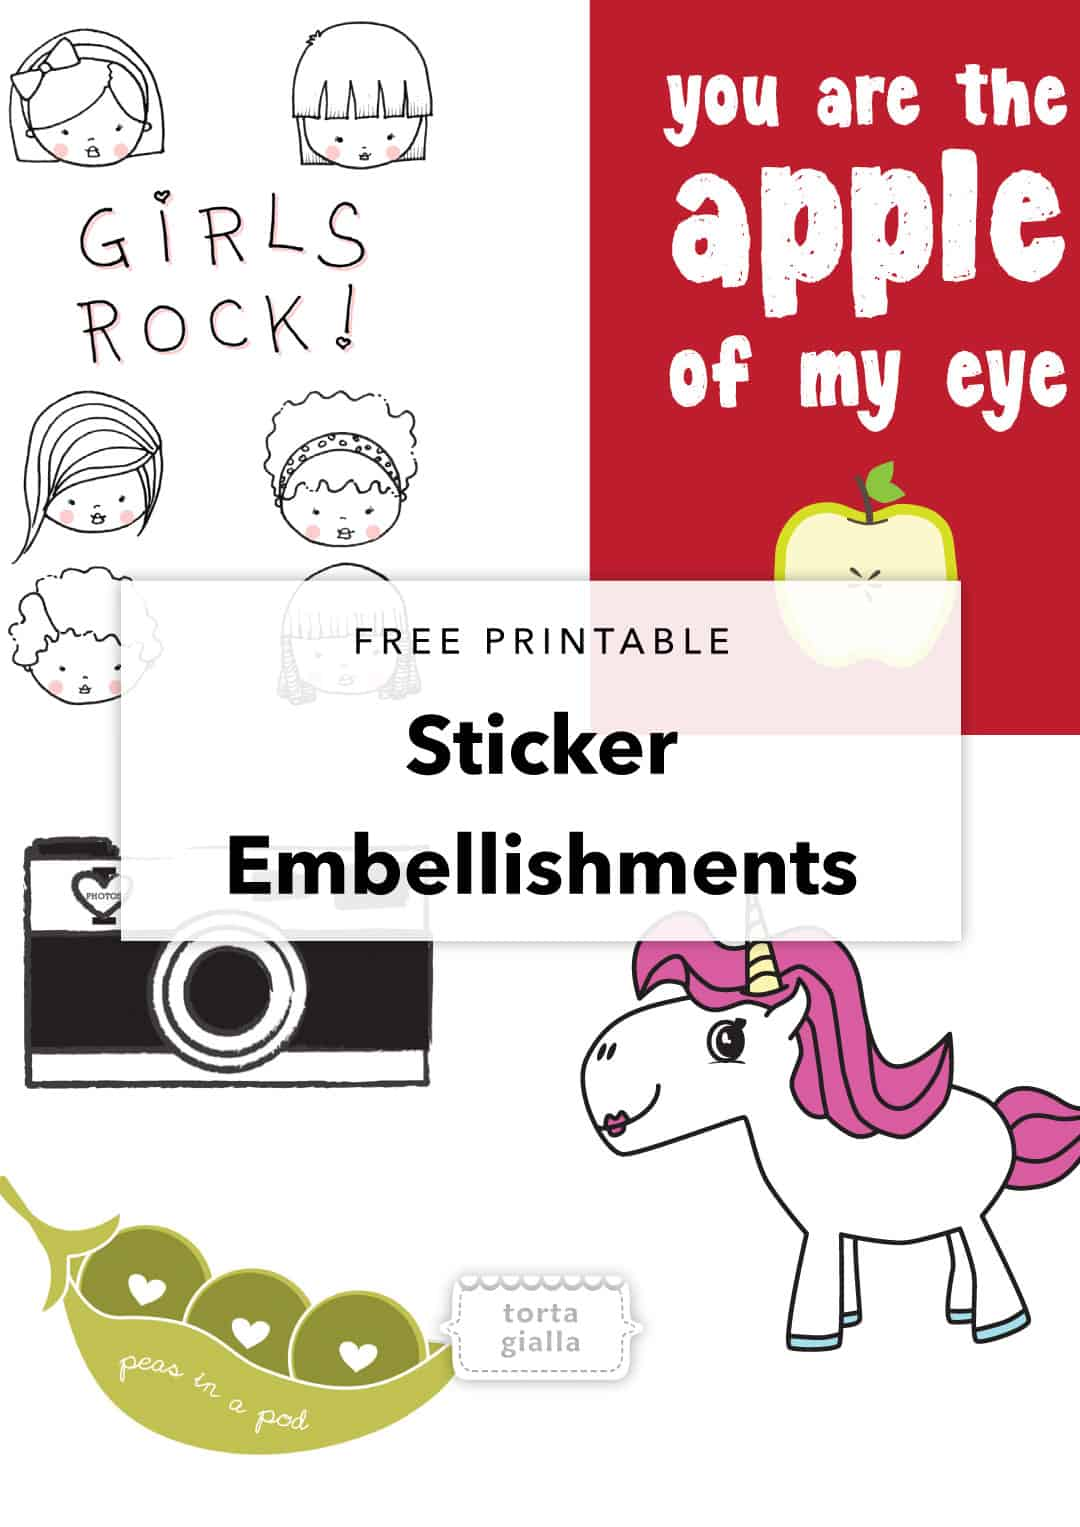 Check out these cute free printable stickers - a variety of adorable illustrations that you can use in art journaling or print on sticky paper!